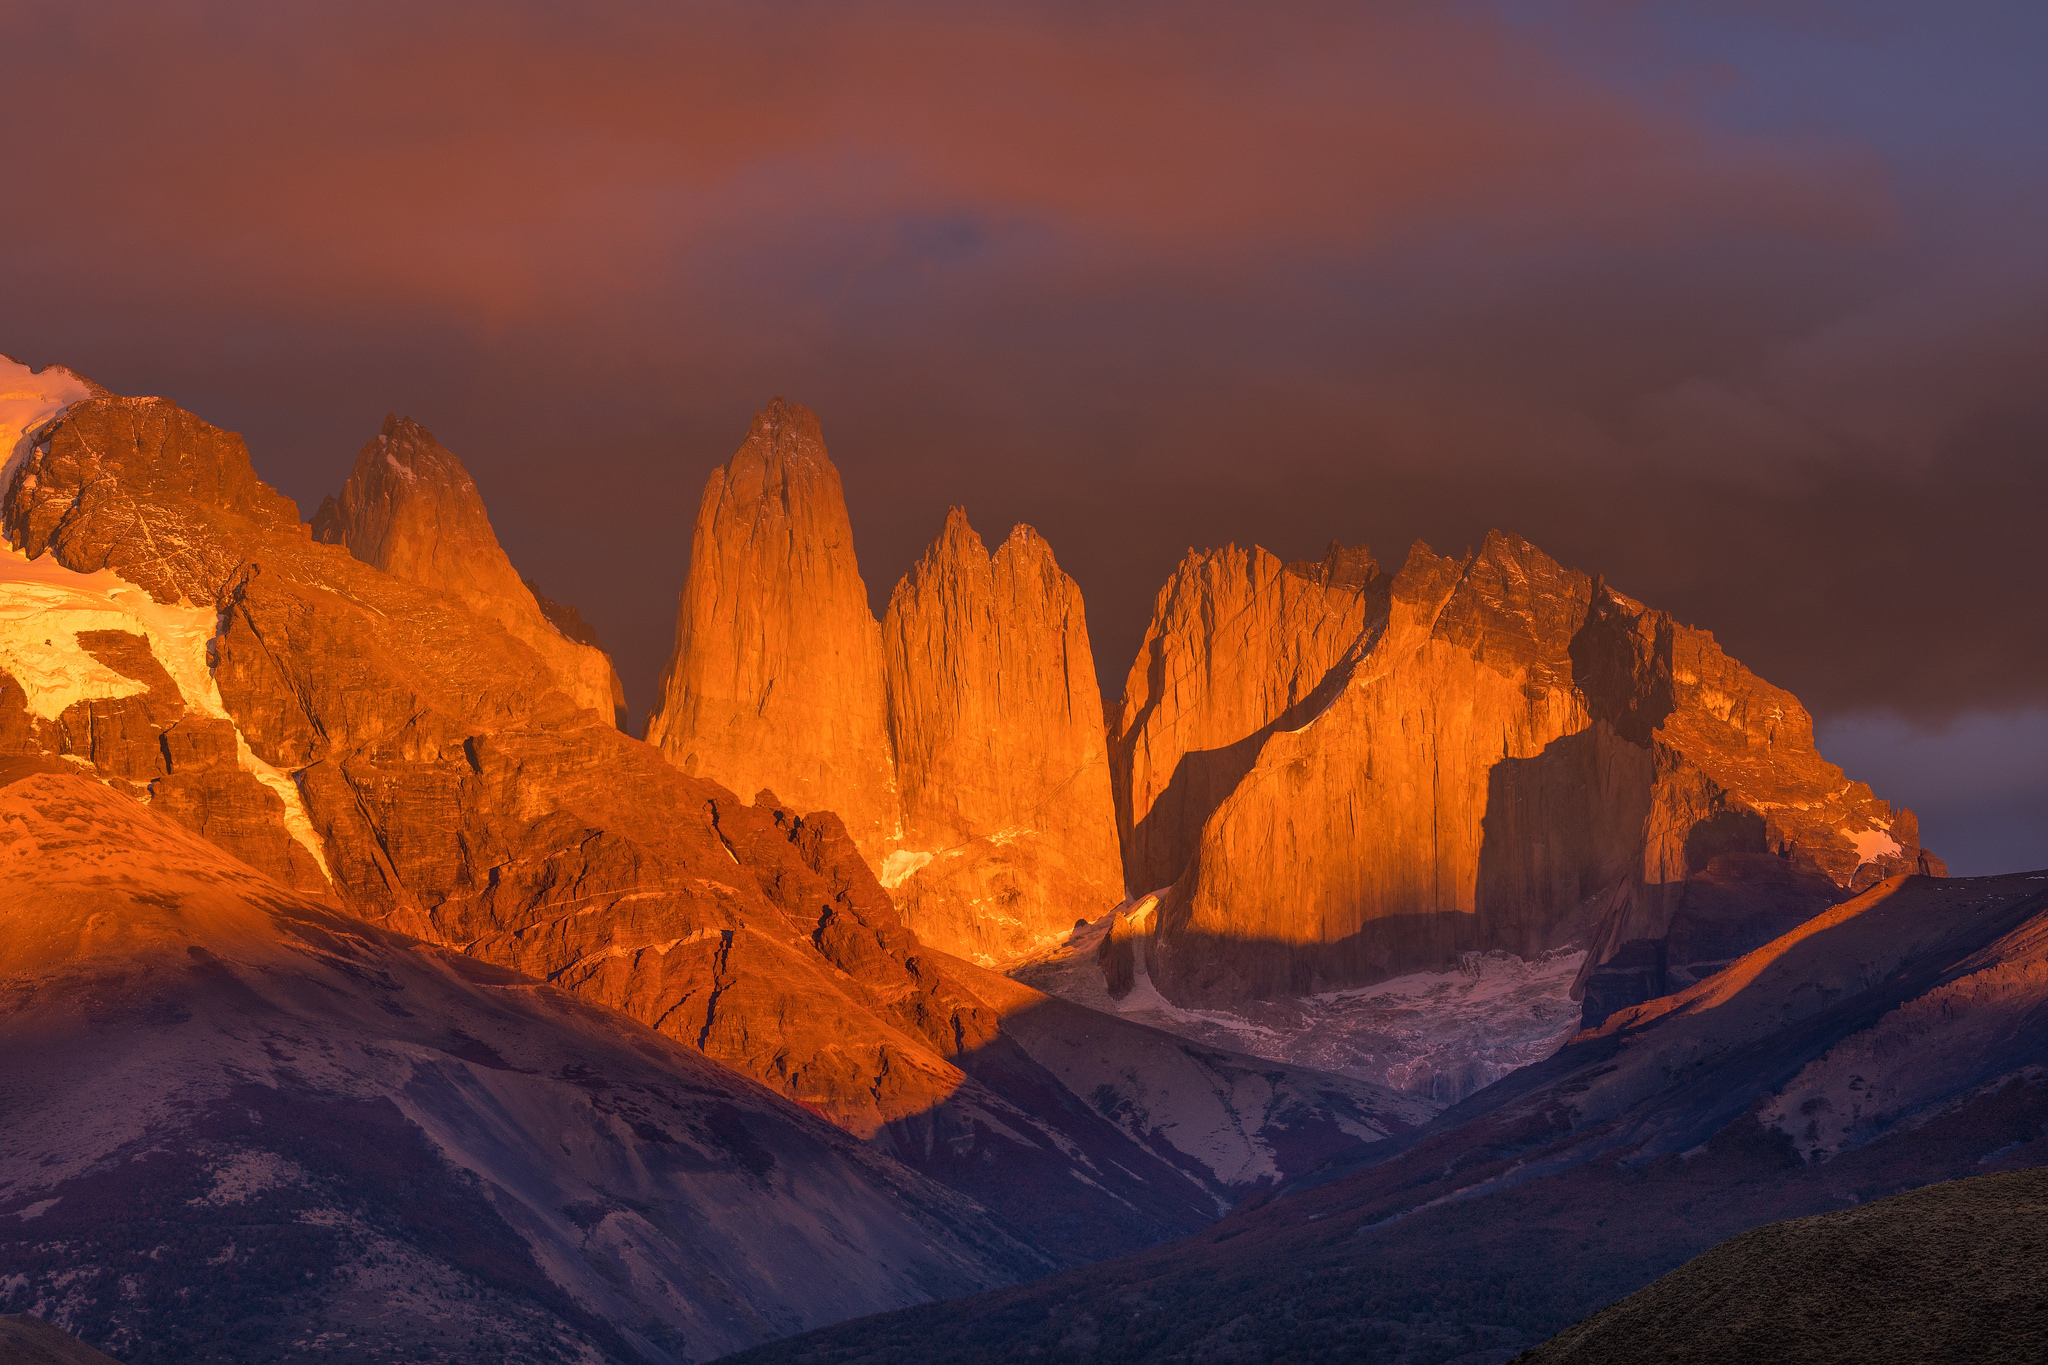 wp-content/uploads/itineraries/Chile/EcoCamp/Ecocamp-torres del paine- excursions 2.jpg